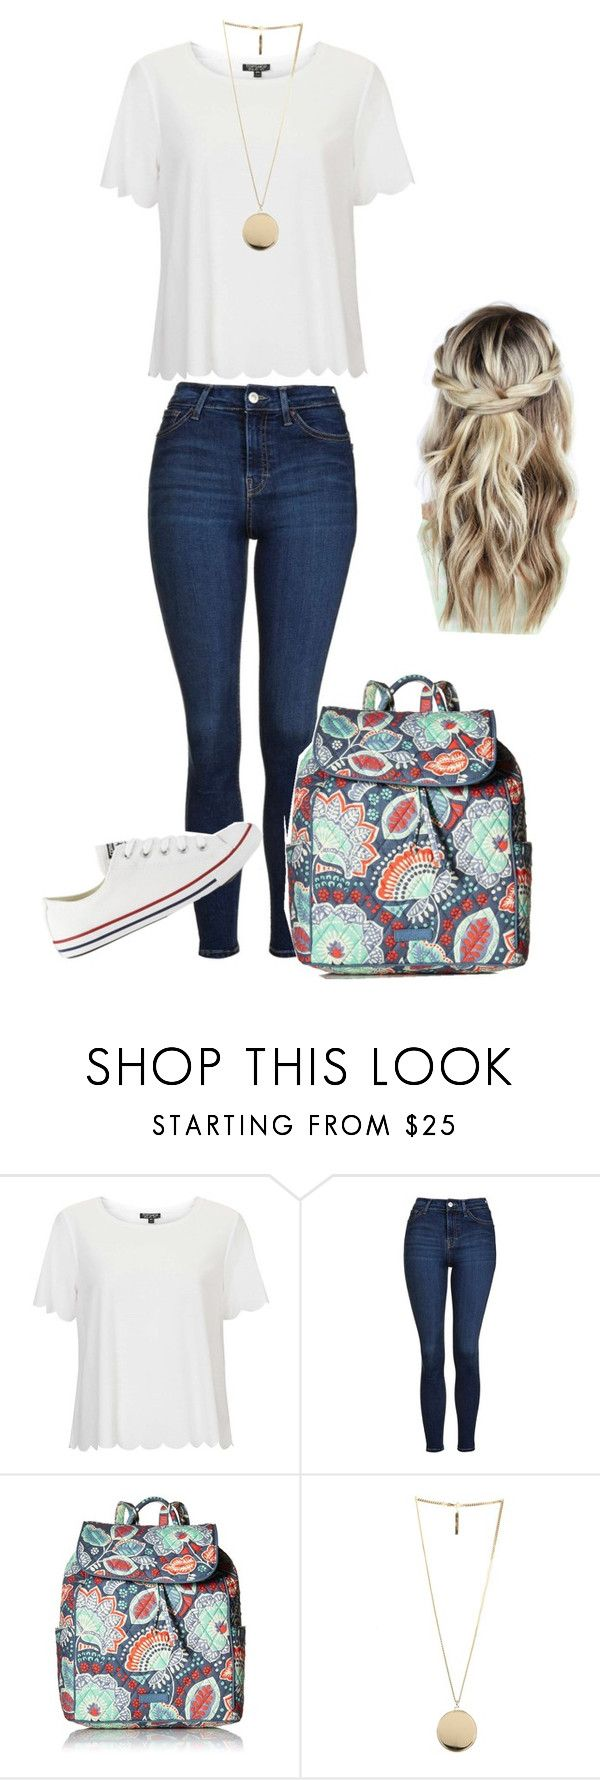 """first day of school outfit"" by avery-m-smith on Polyvore featuring Topshop, Vera Bradley, Givenchy and Converse"